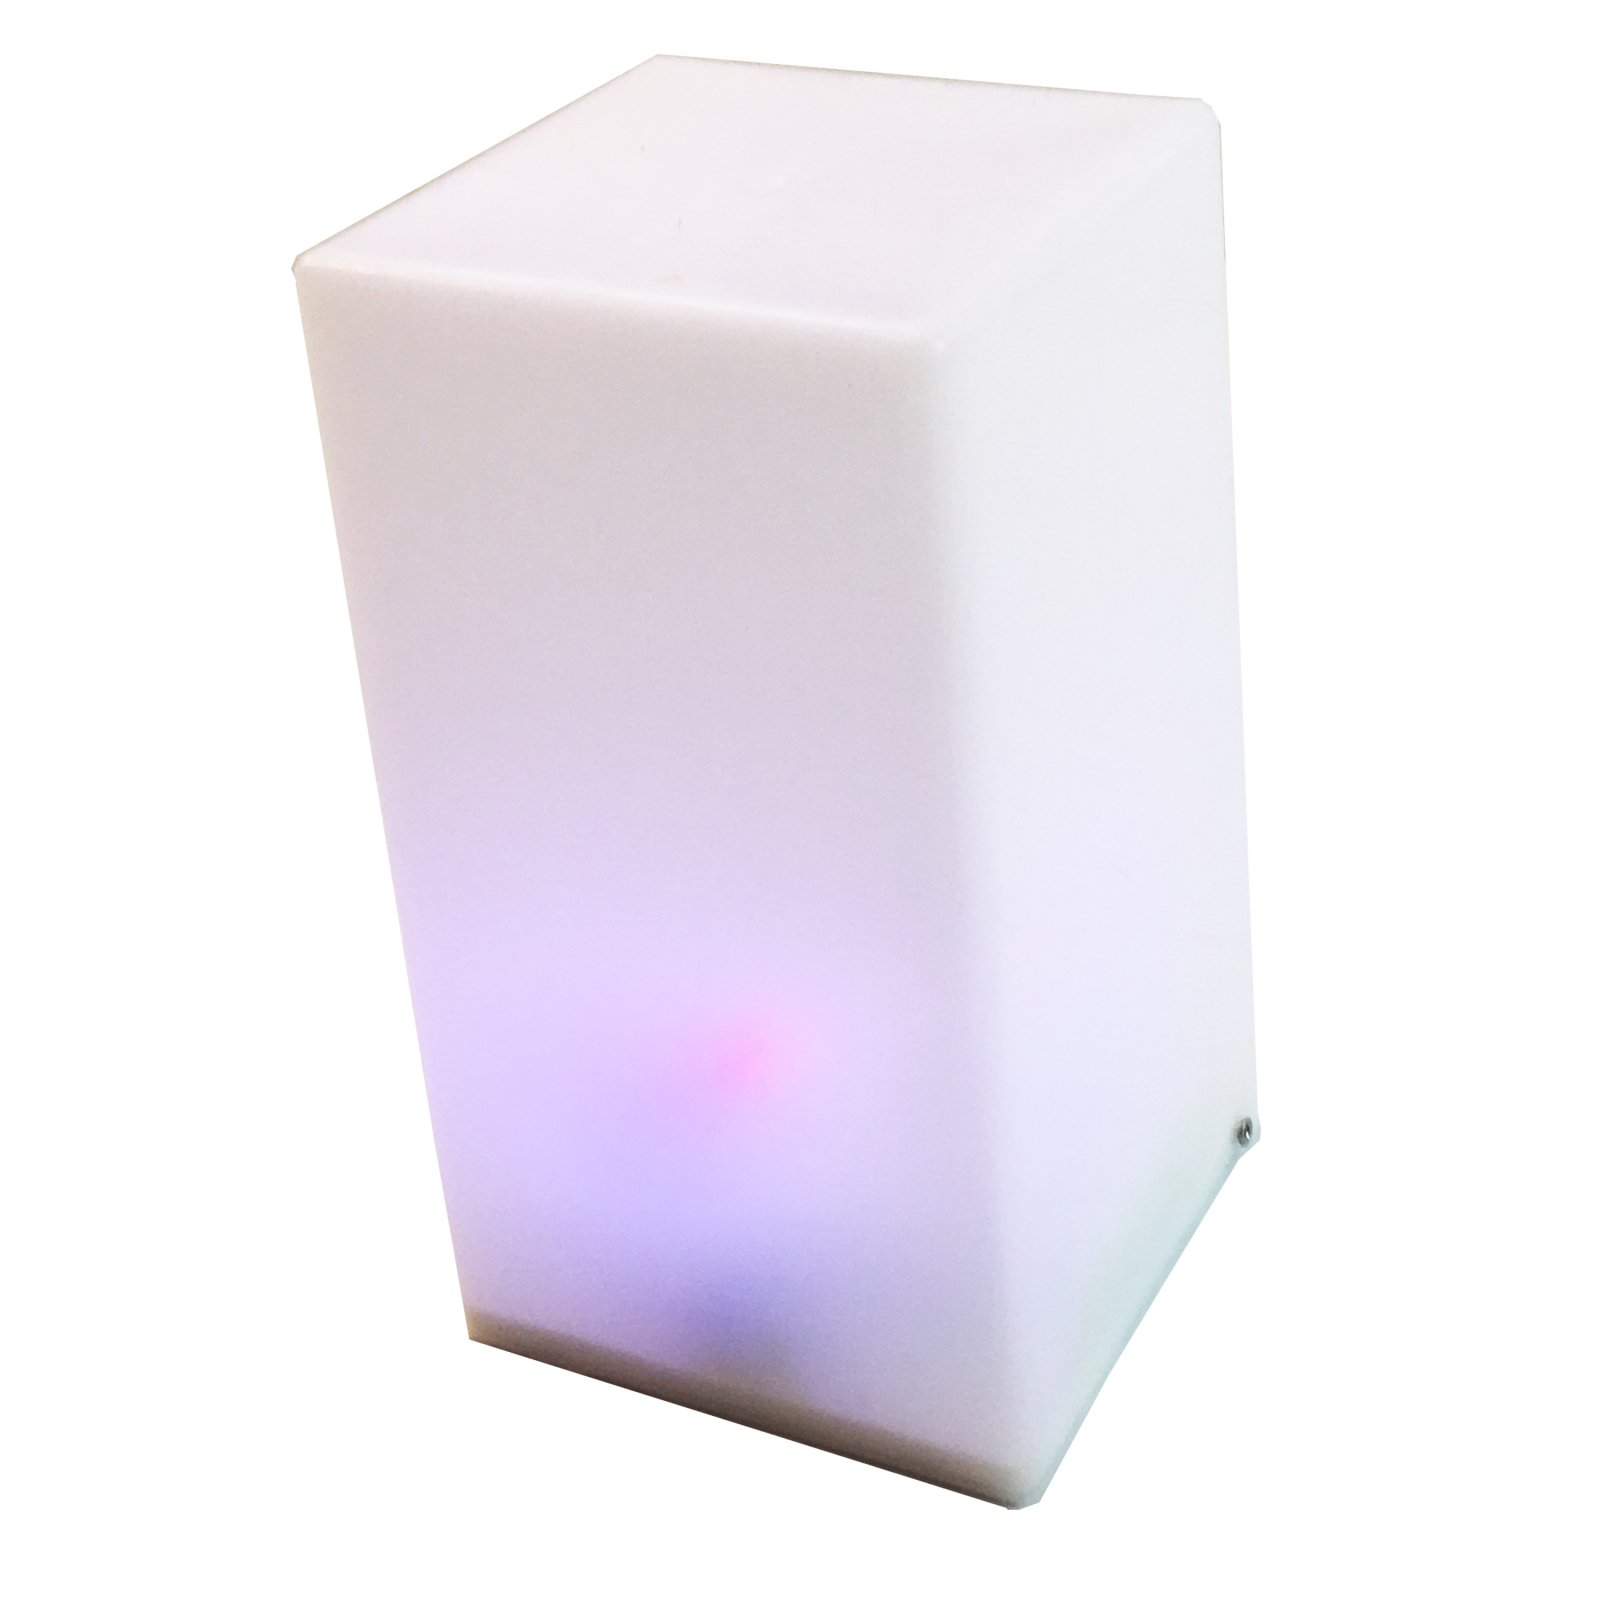 Universal Home LED 7 Color Changing Mood Light Ambiance Home Decor White Light